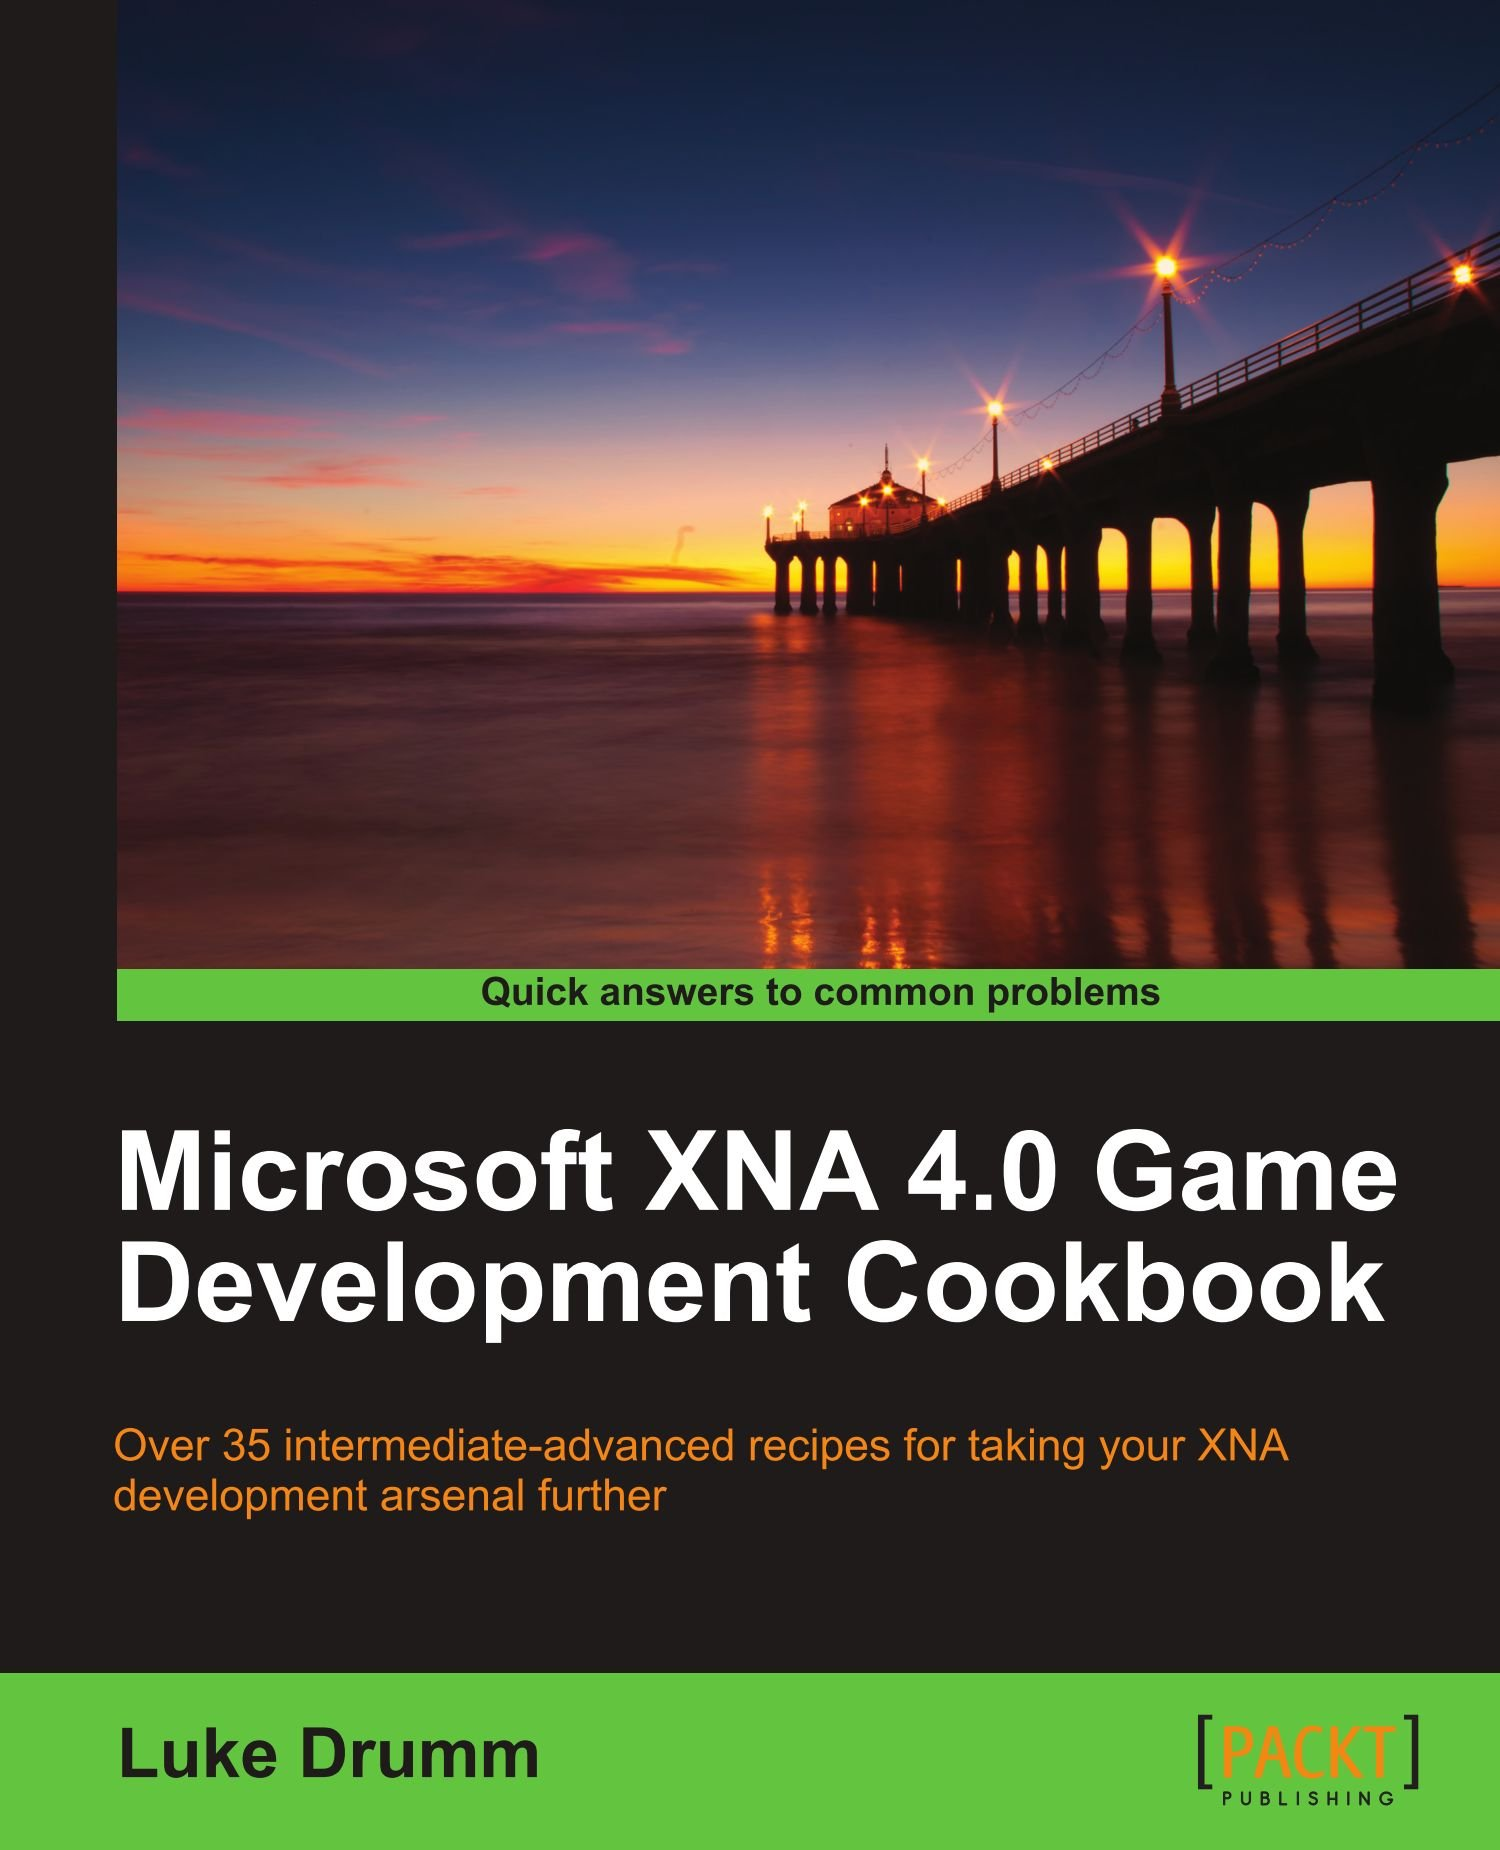 Microsoft XNA 4.0 Game Development Cookbook: Luke Drumm: 9781849691987:  Amazon.com: Books